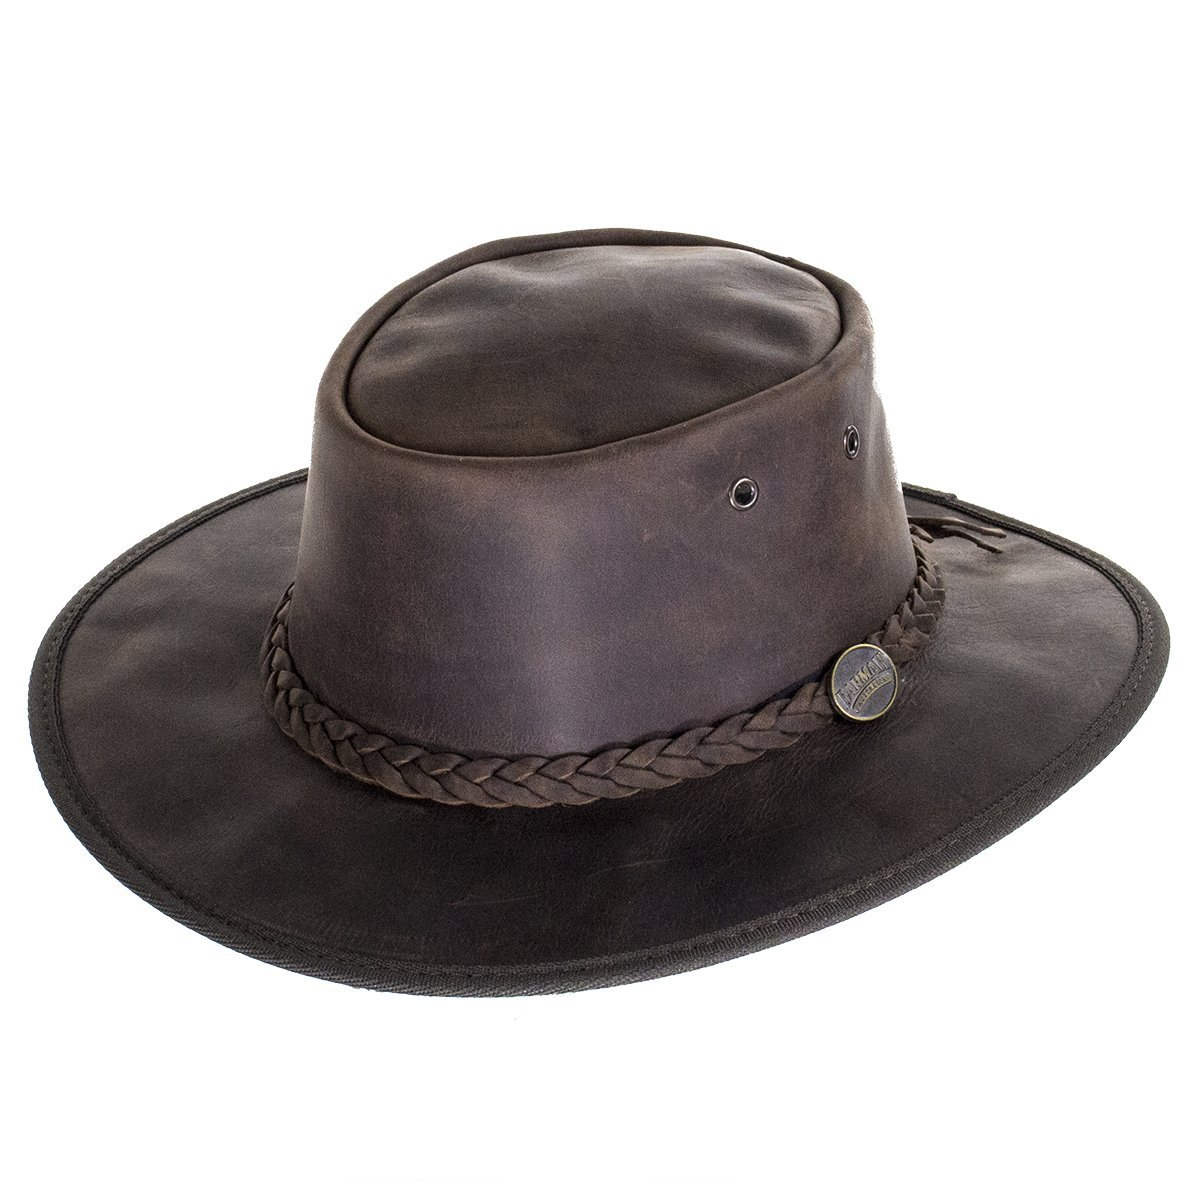 Barmah Foldaway Bronco Leather Outback Hat in Brown